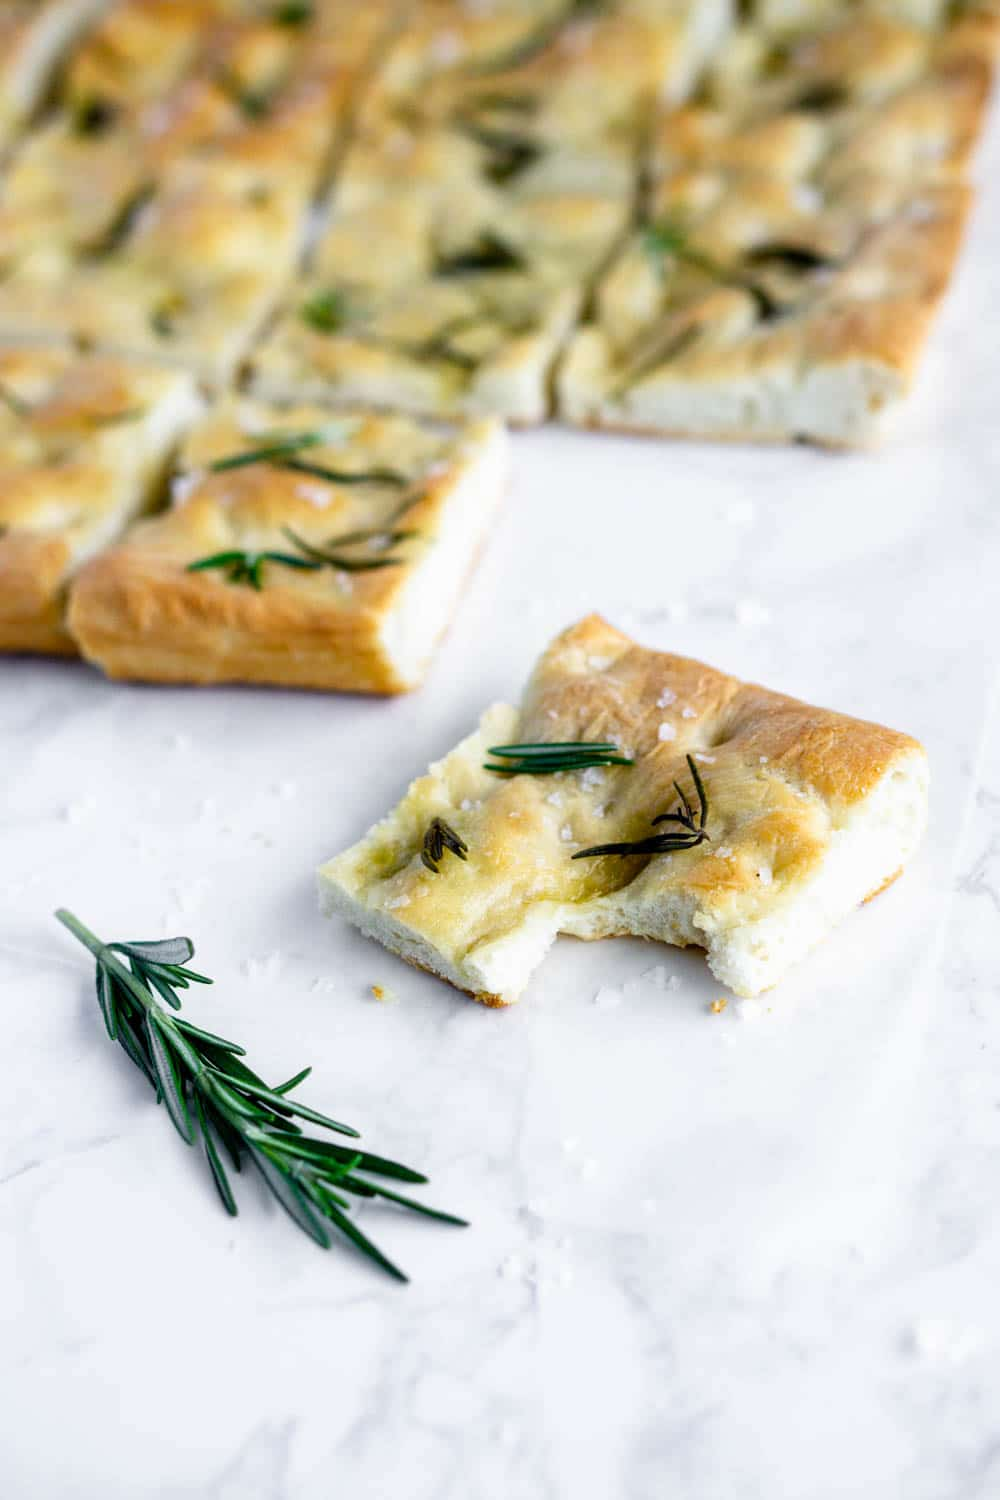 square slice of focaccia topped with rosemary and focaccia in the background